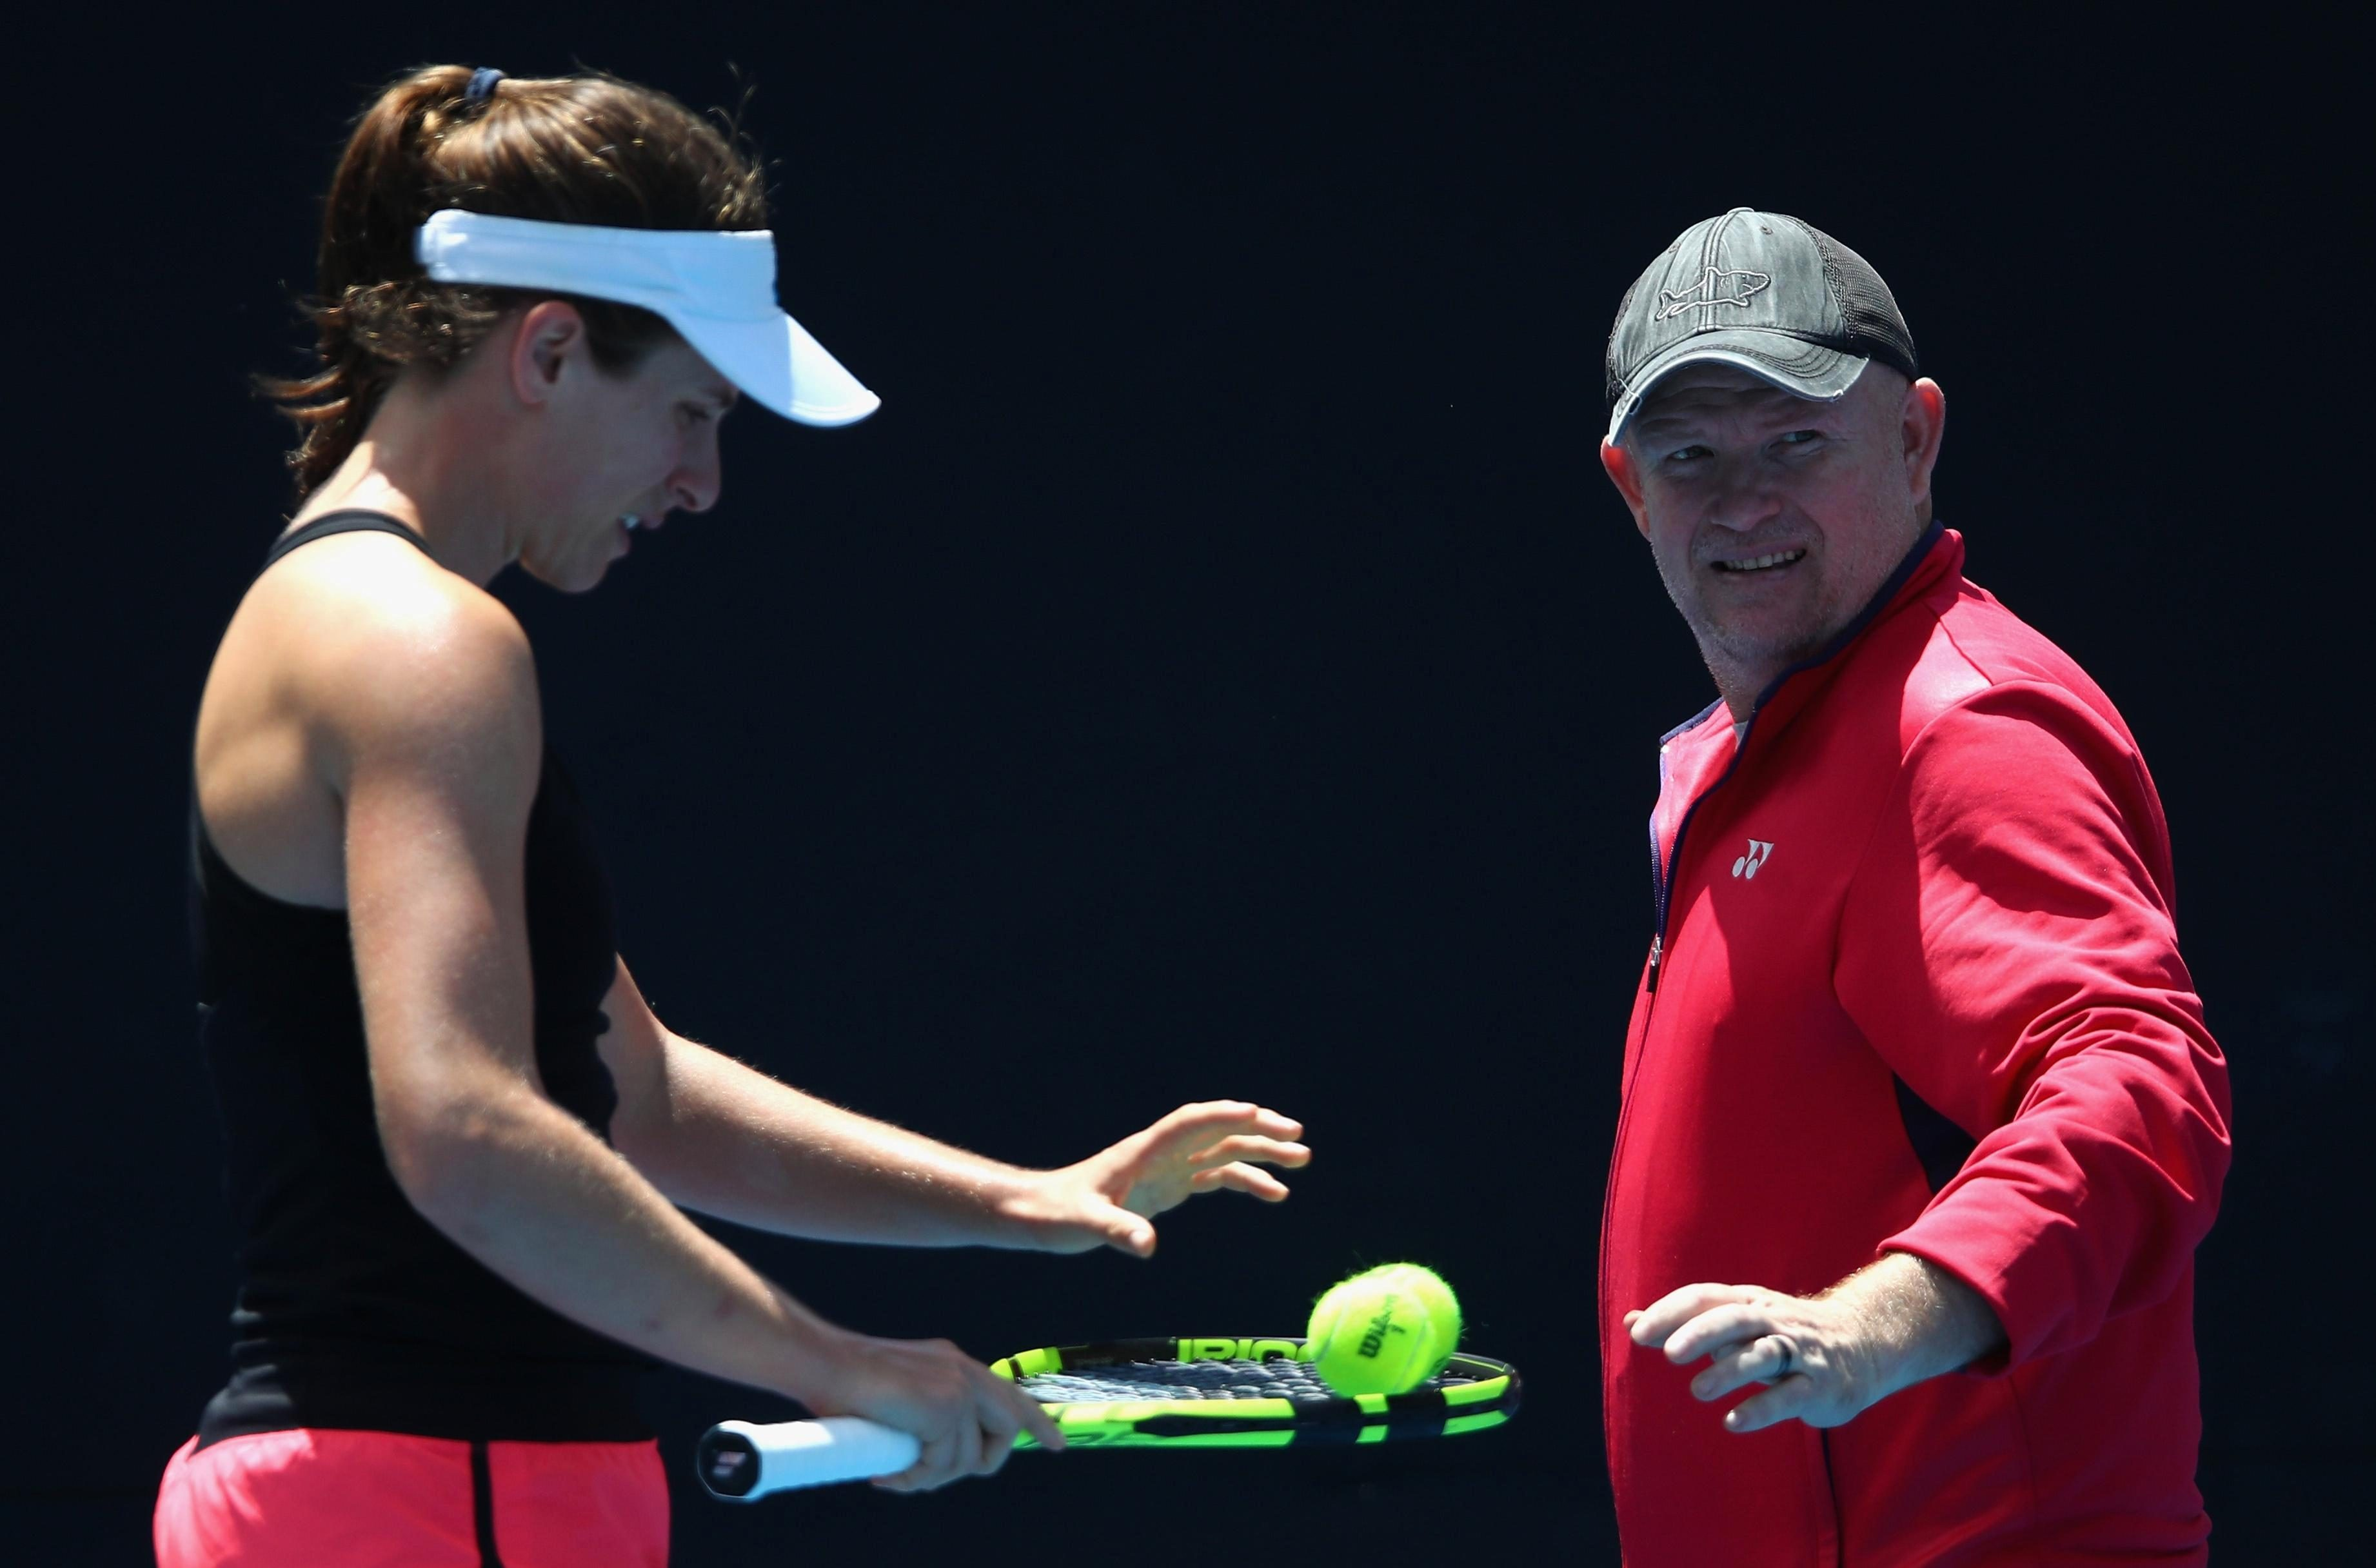 She split with coach Michael Joyce after her first-round exit at Flushing Meadows